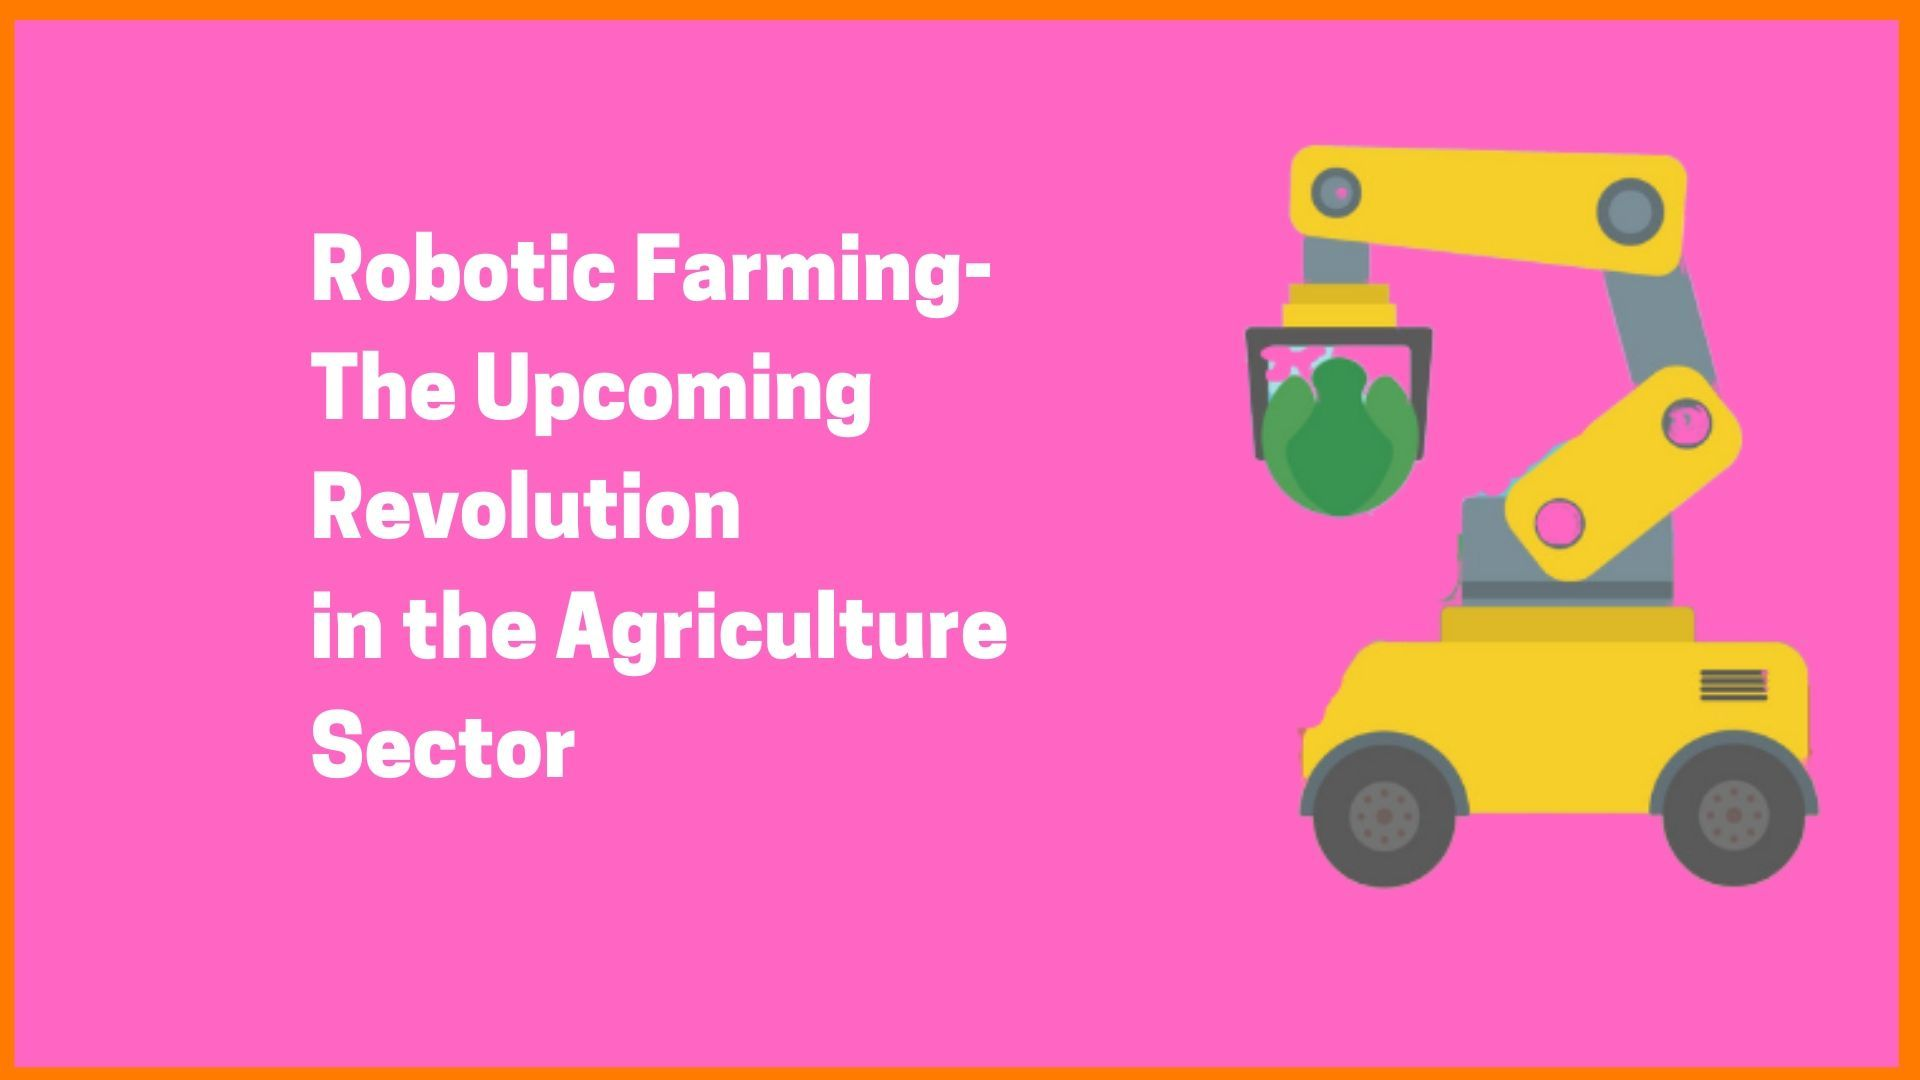 Robotic Farming-Upcoming Revolution In The Agriculture Sector